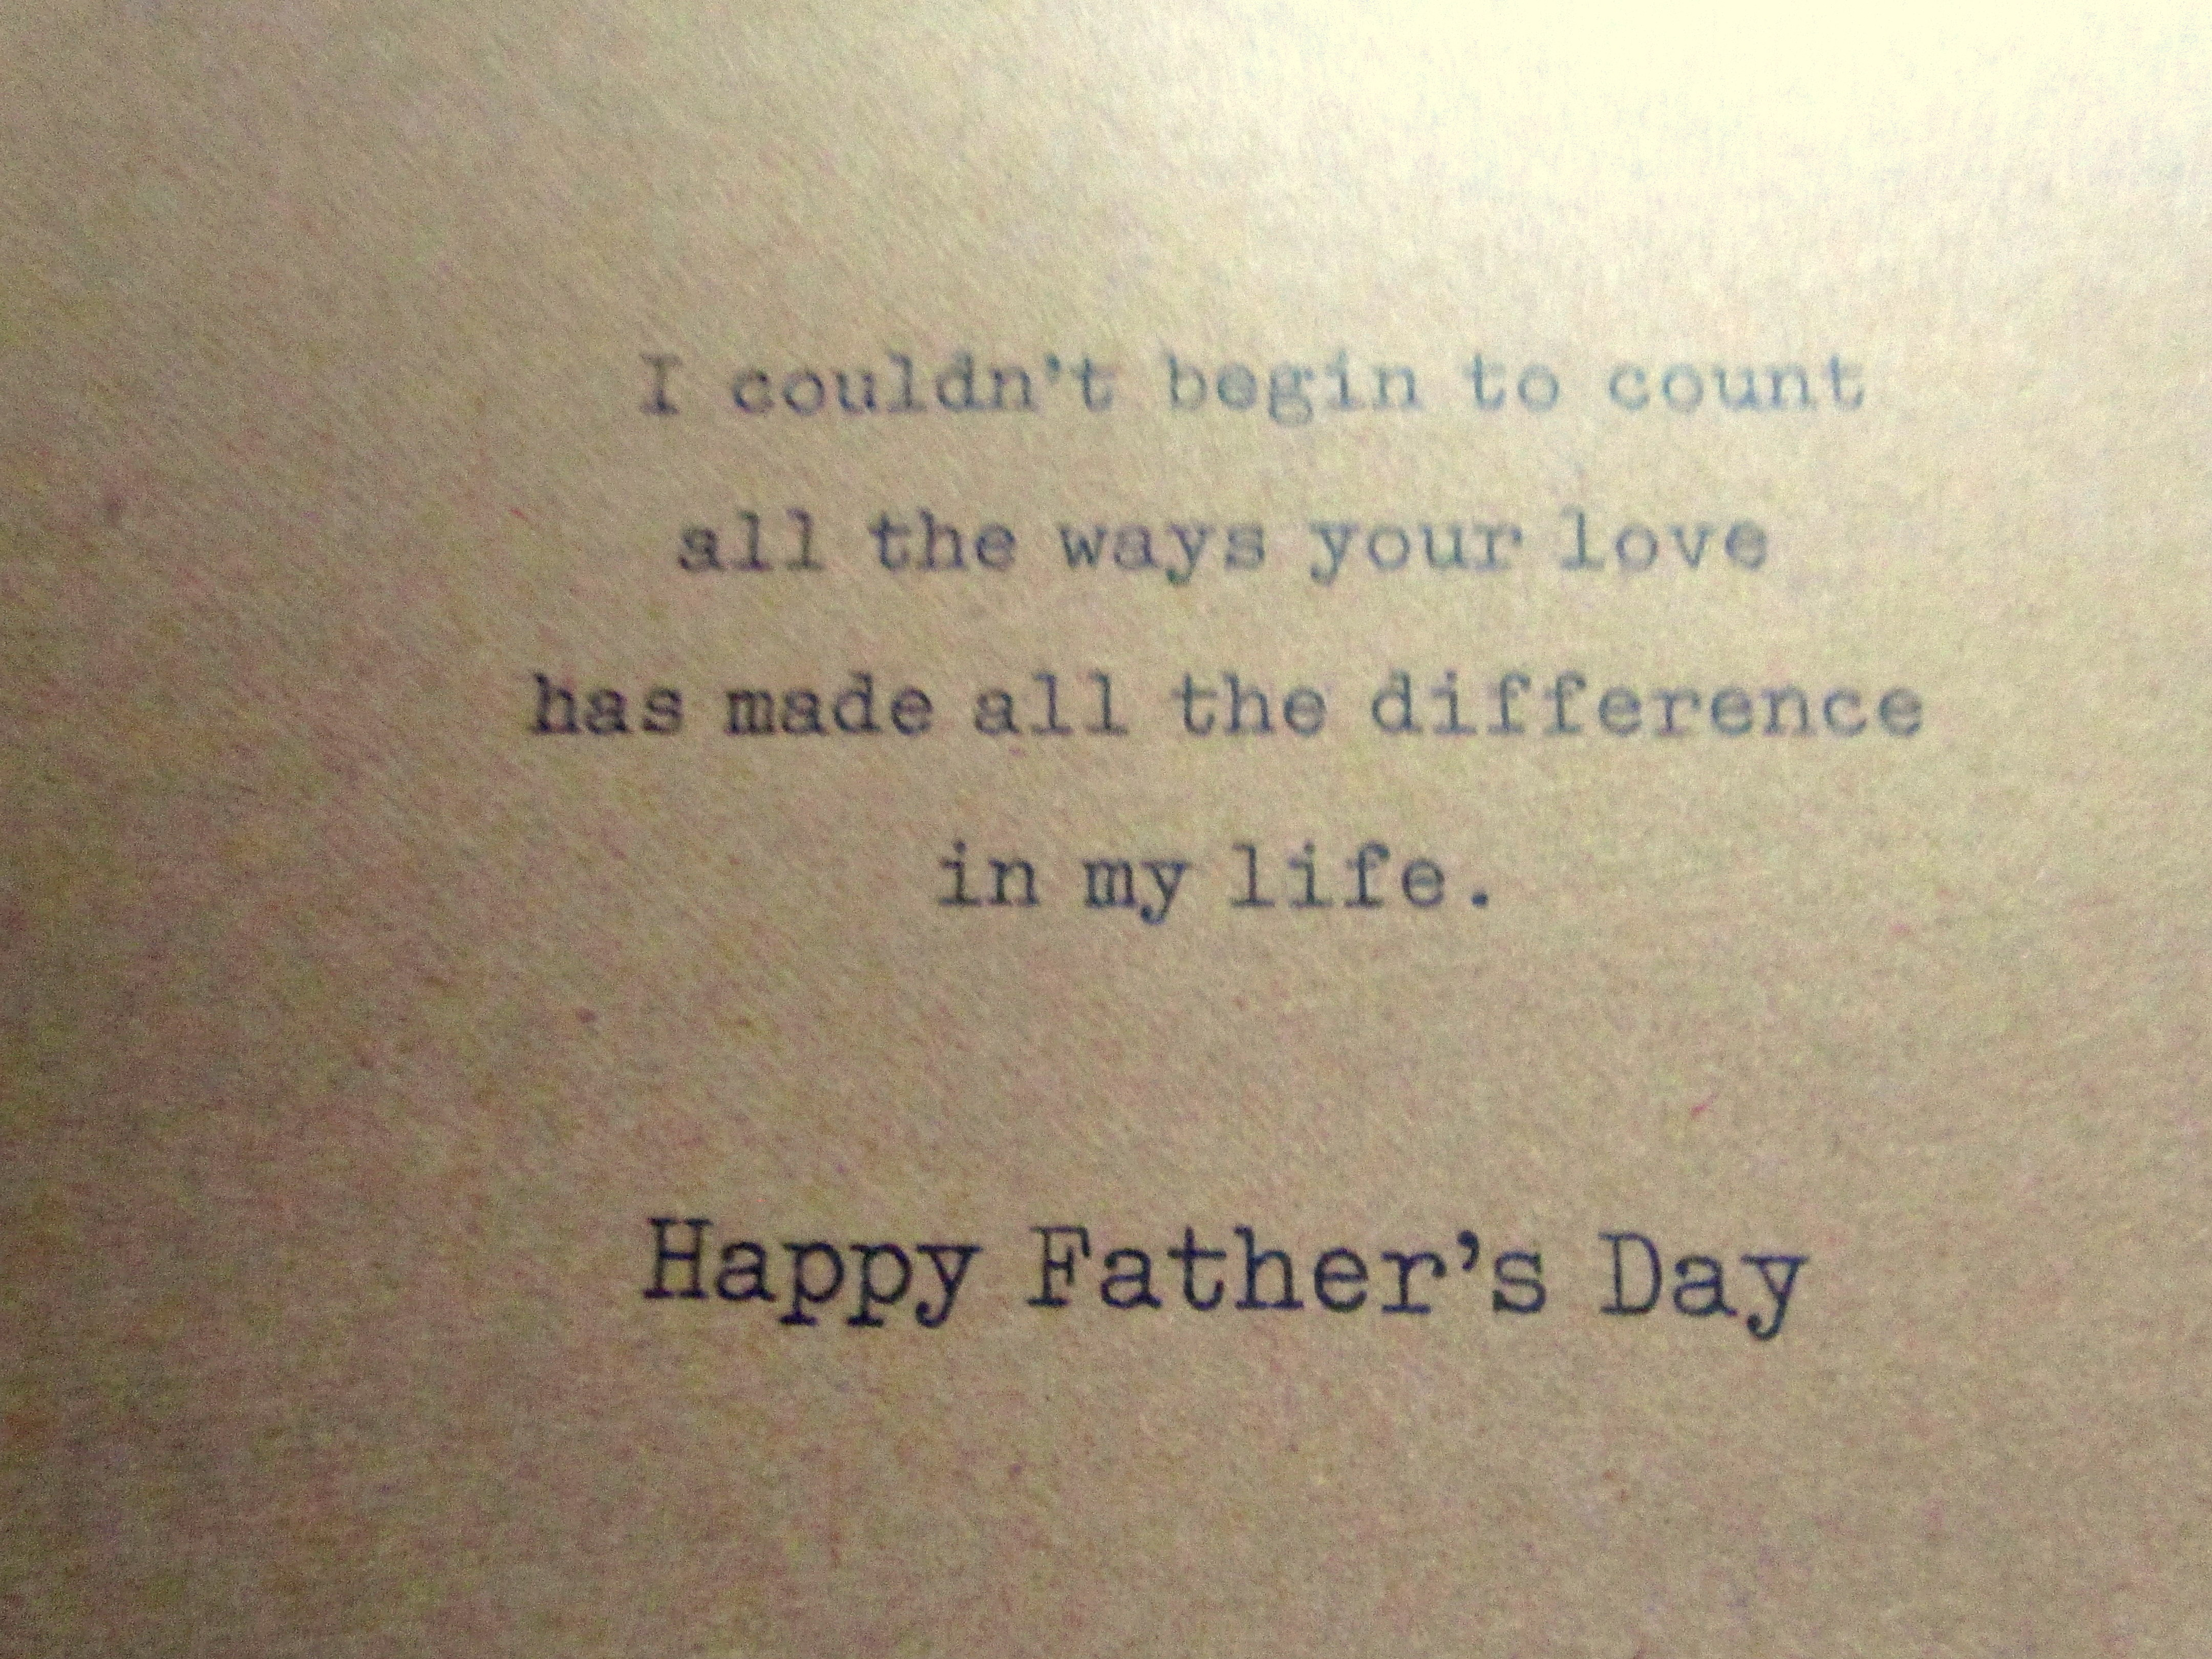 Fathers Day Wishes The Memories Project